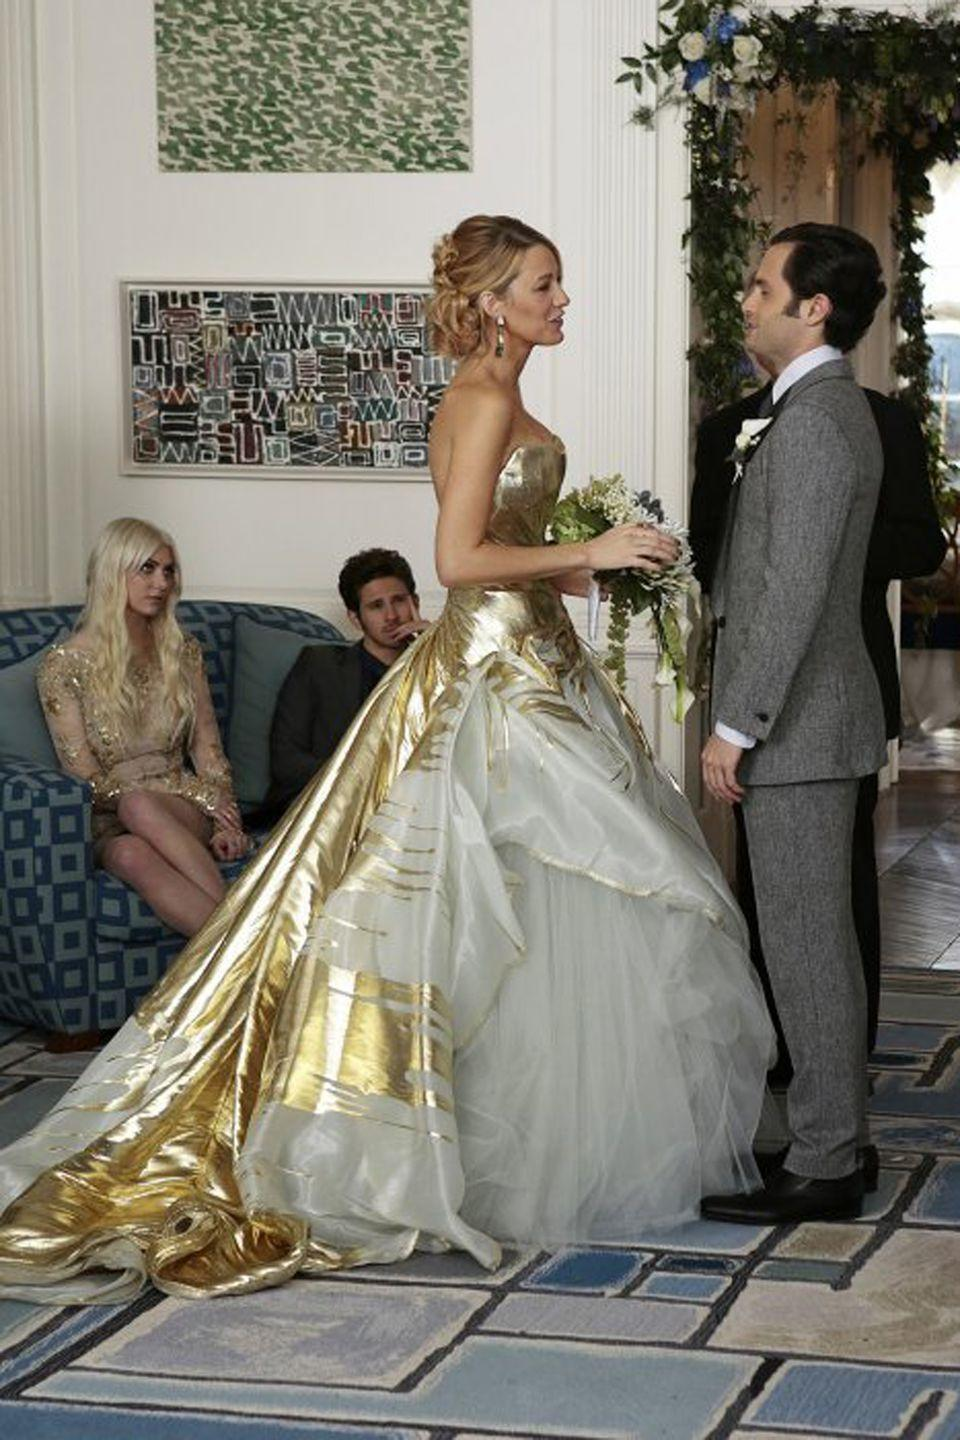 """<p>Following in B's footsteps, Serena also got hitched to none other than Dan, who was revealed as the show's titular character in the series finale. She opted for a strapless gold, metallic, and white tulle dress from <a href=""""http://www.elleuk.com/fashion/celebrity-style/articles/g5328/blake-lively-weds-in-gold-georges-chakra/"""" rel=""""nofollow noopener"""" target=""""_blank"""" data-ylk=""""slk:designer Georges Chakra"""" class=""""link rapid-noclick-resp"""">designer Georges Chakra</a> in the final episode.</p>"""